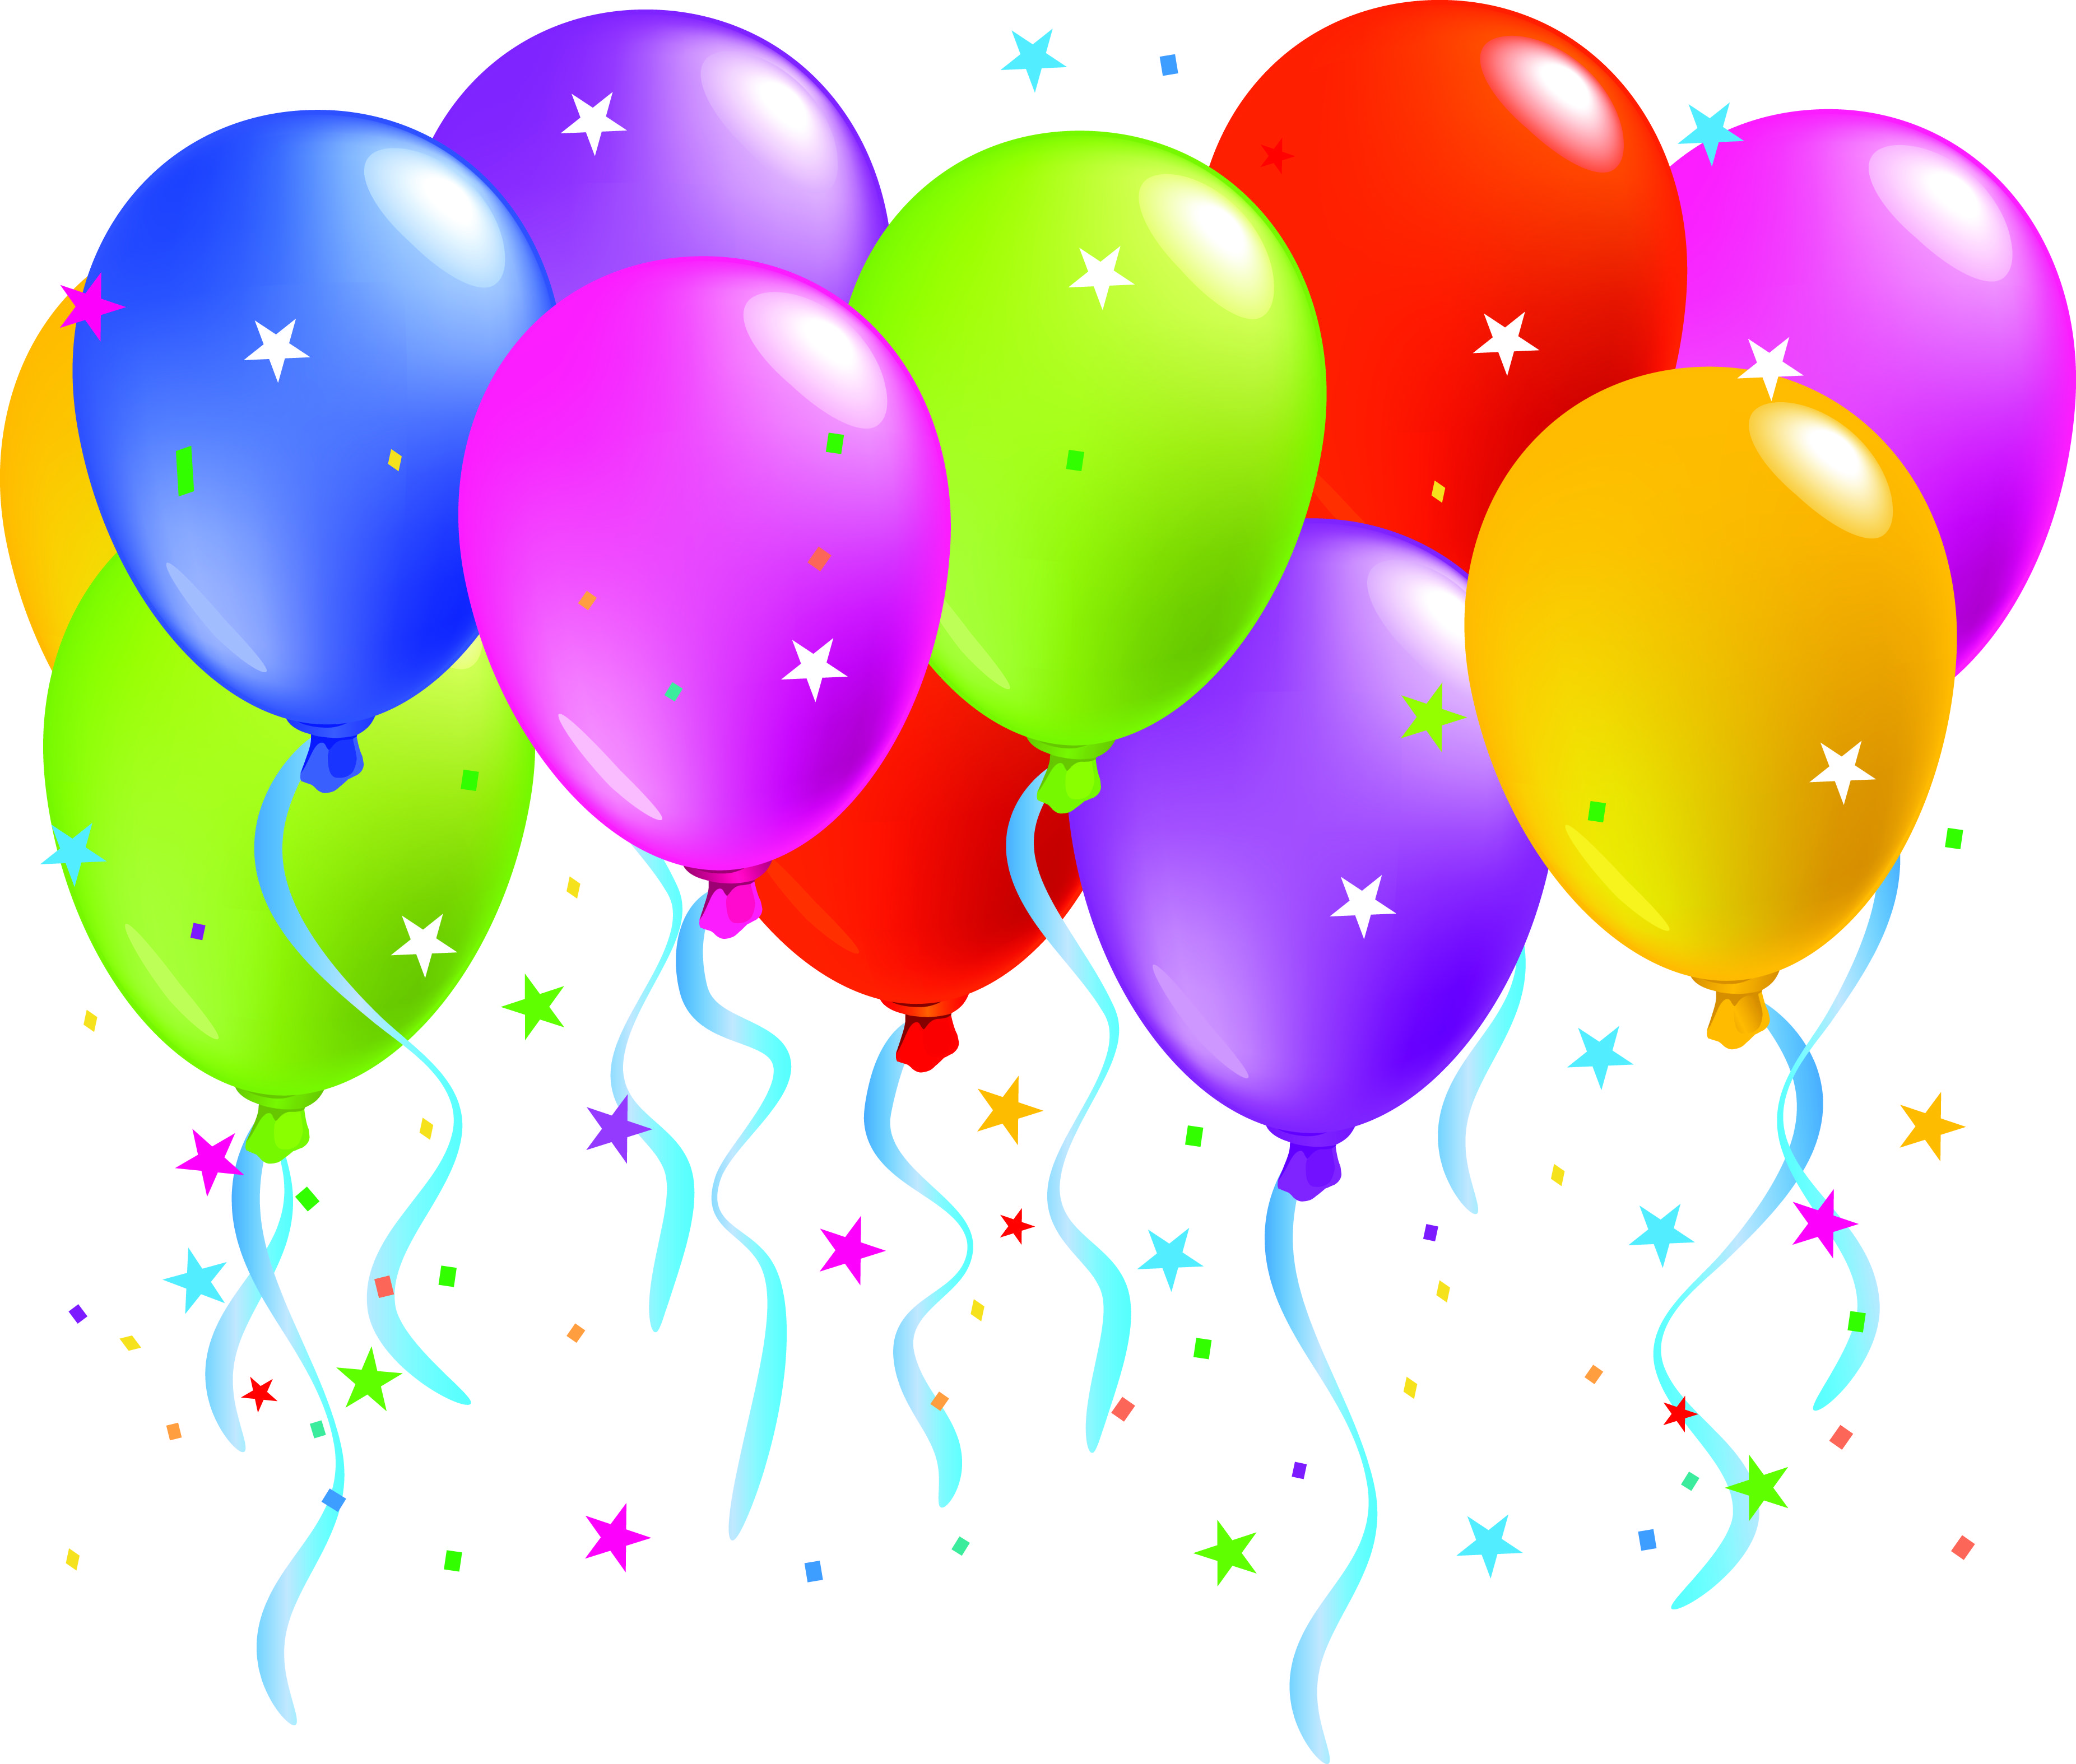 hight resolution of images of balloons for birthday balloons